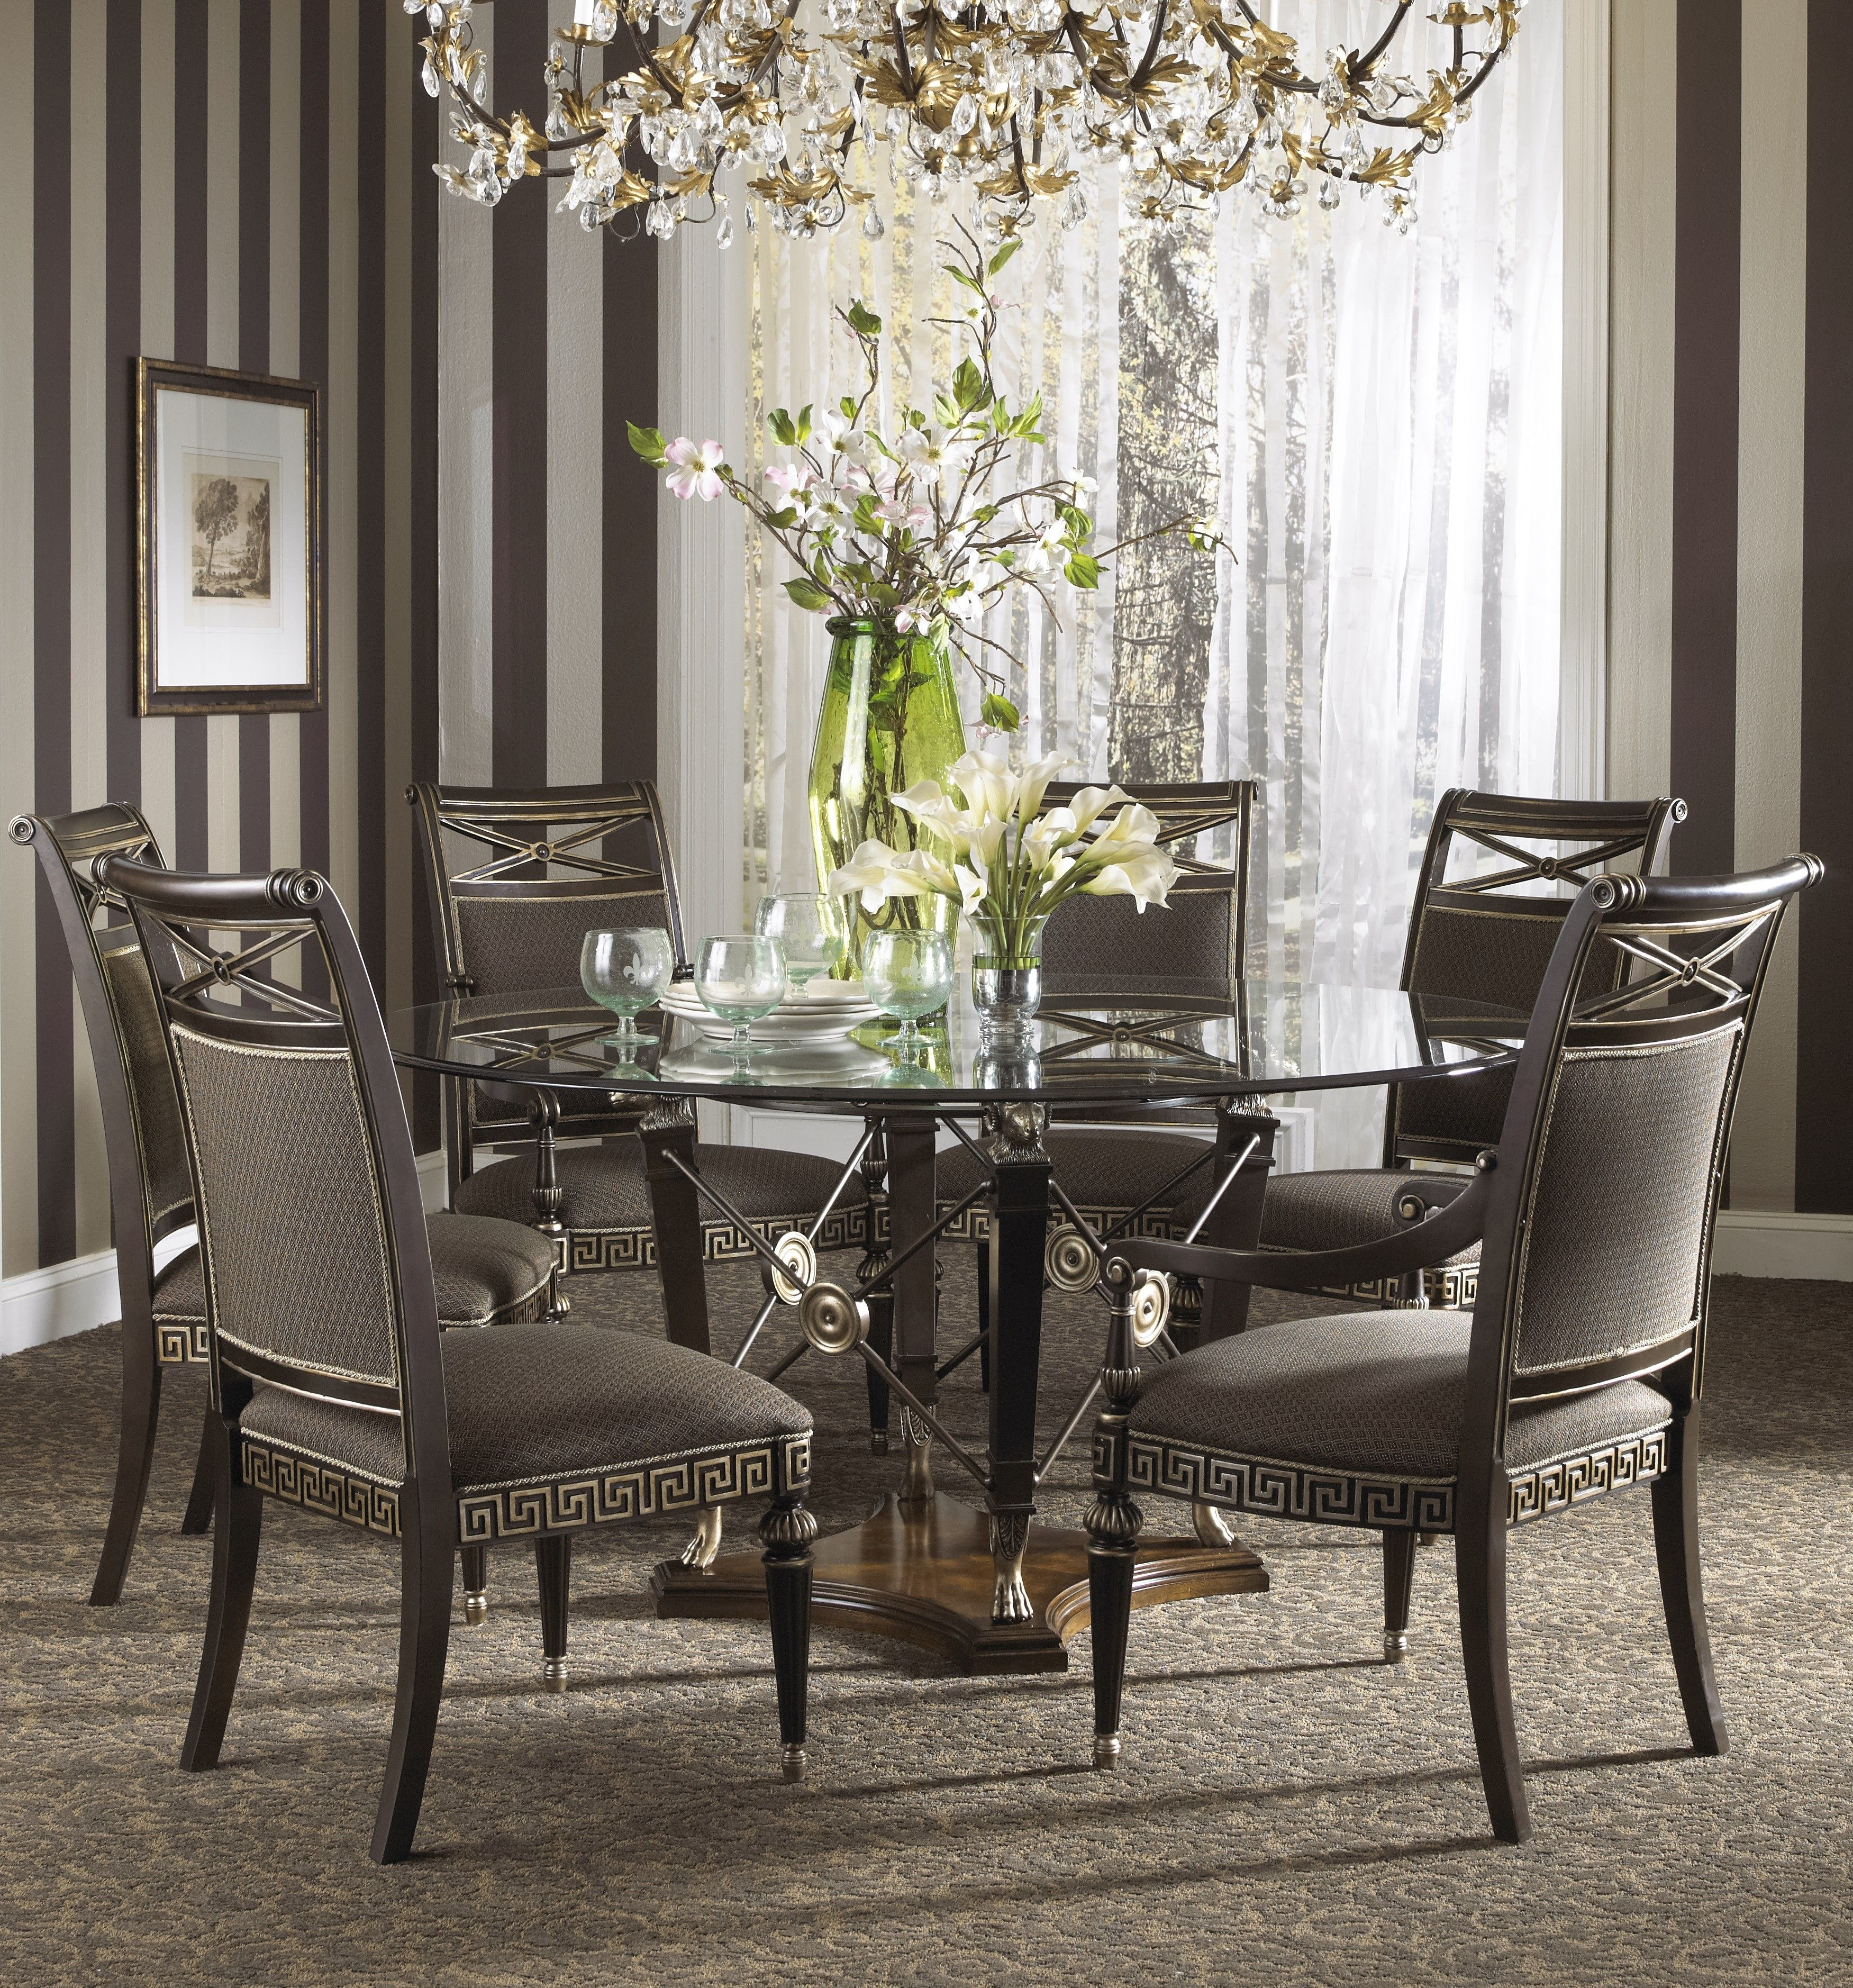 Buy The Belvedere Dining Room Set With Ground Glass Table By Fine Furniture Design Fr Formal Dining Room Sets Luxury Dining Room Decor Glass Dining Room Table Formal dining room table sets